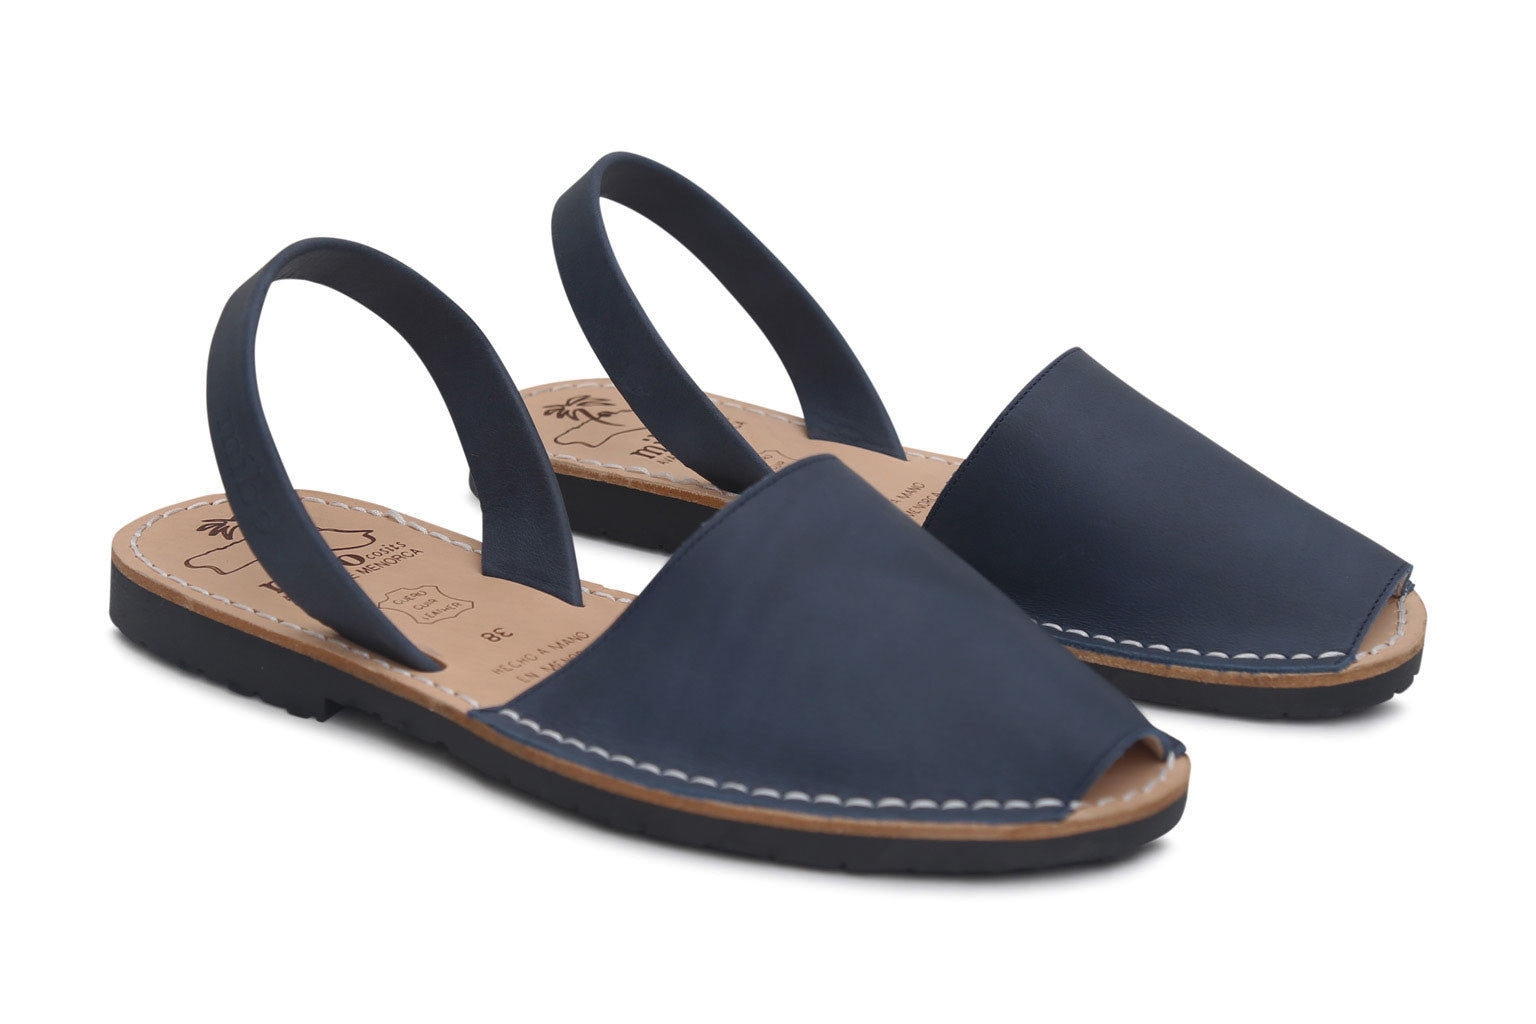 Mibo Avarcas Navy Menorcan Sandals The Avarca Store